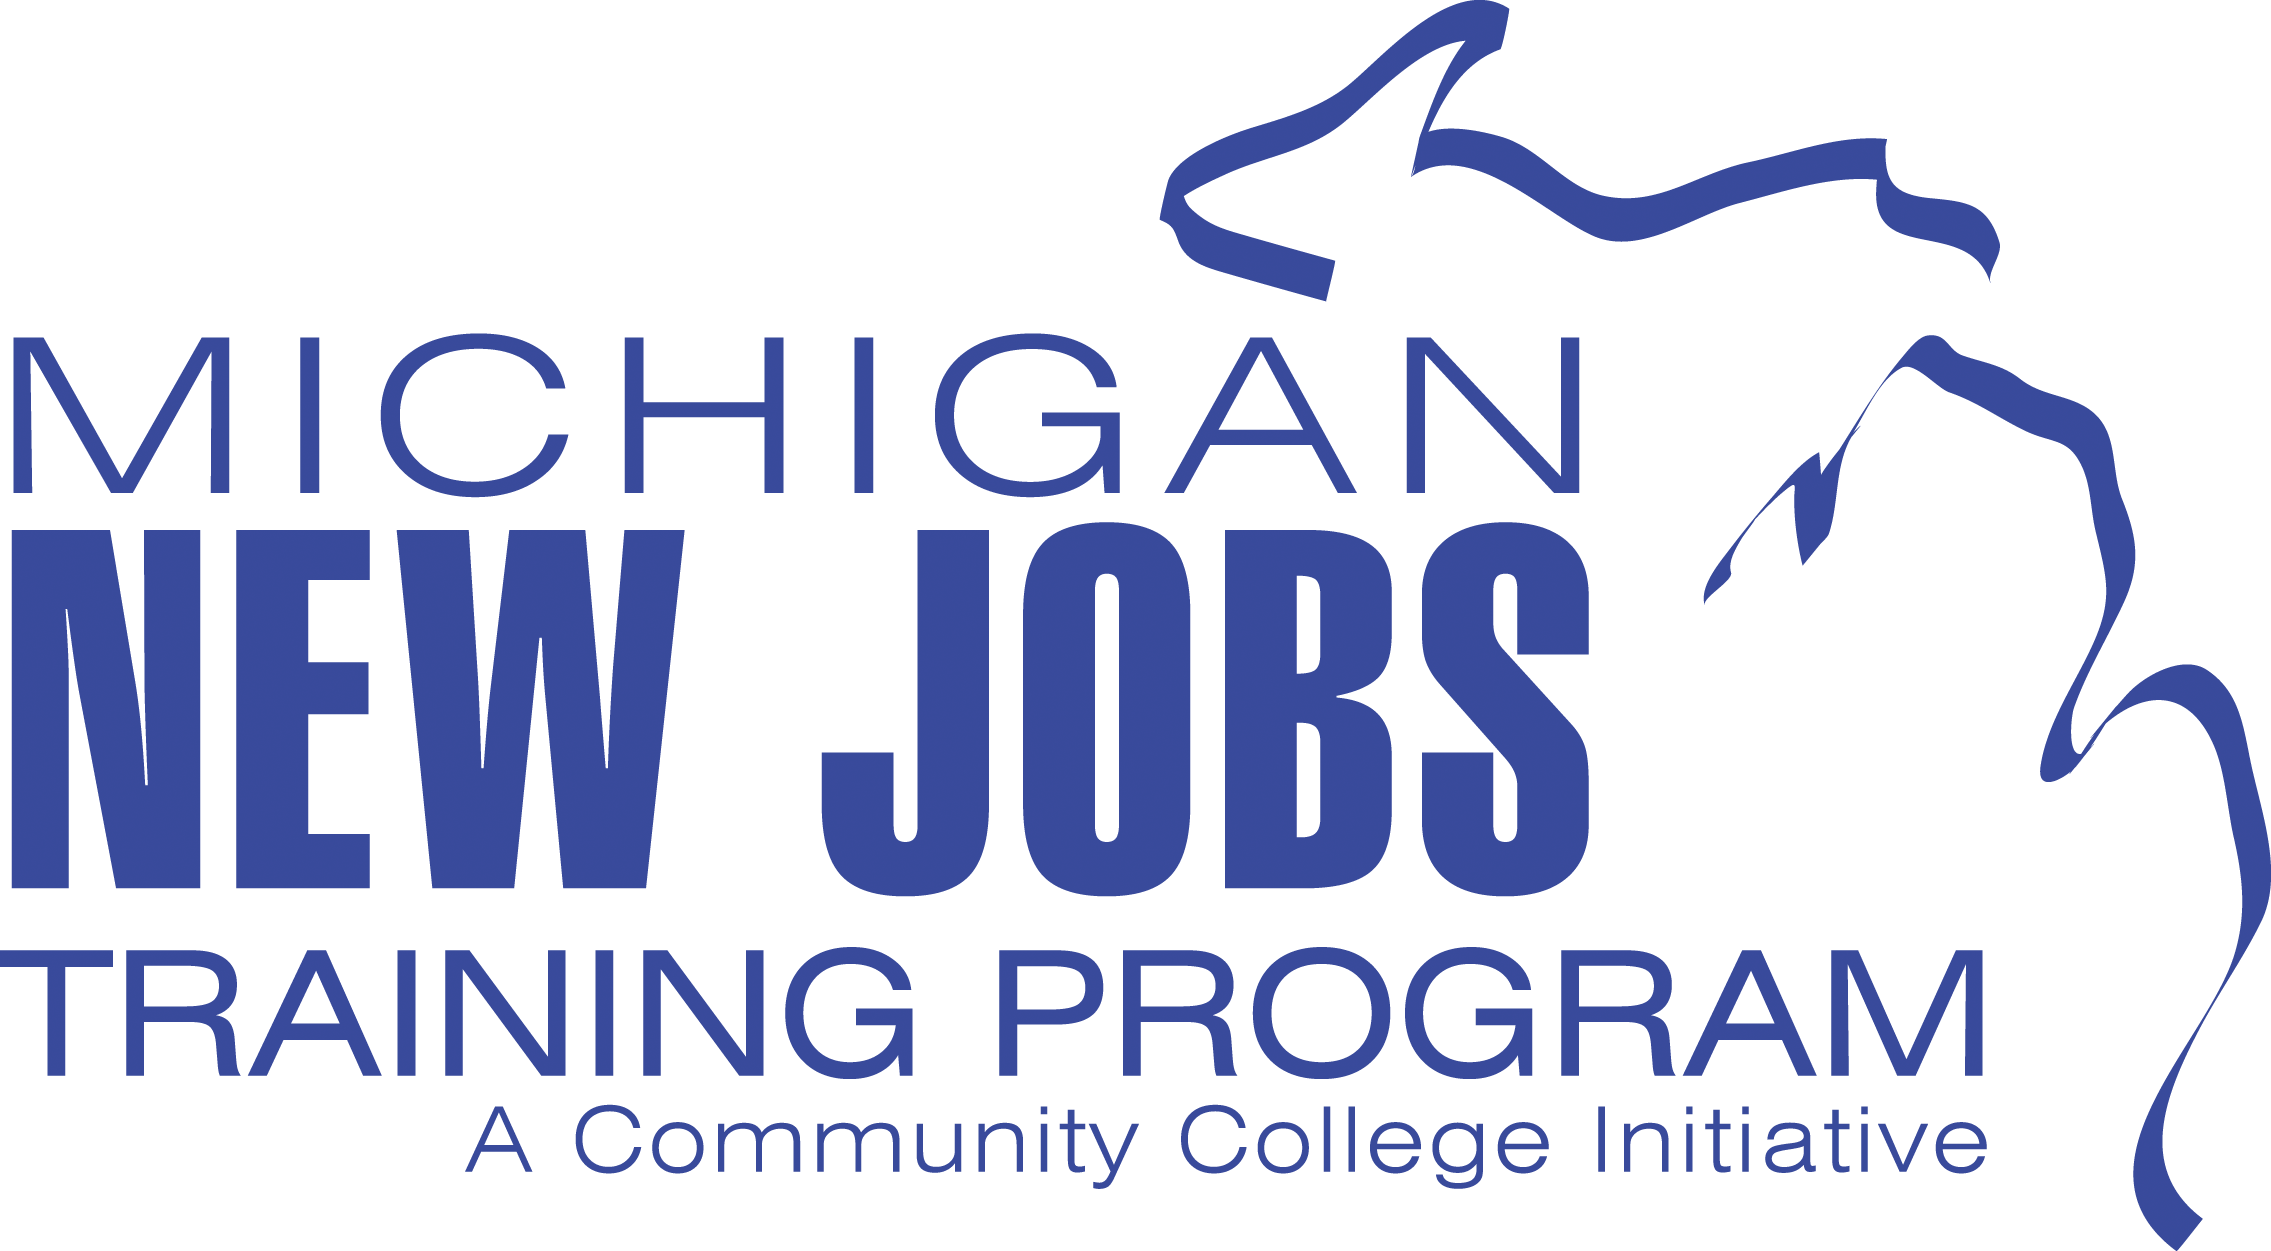 New Jobs Training Program Logo